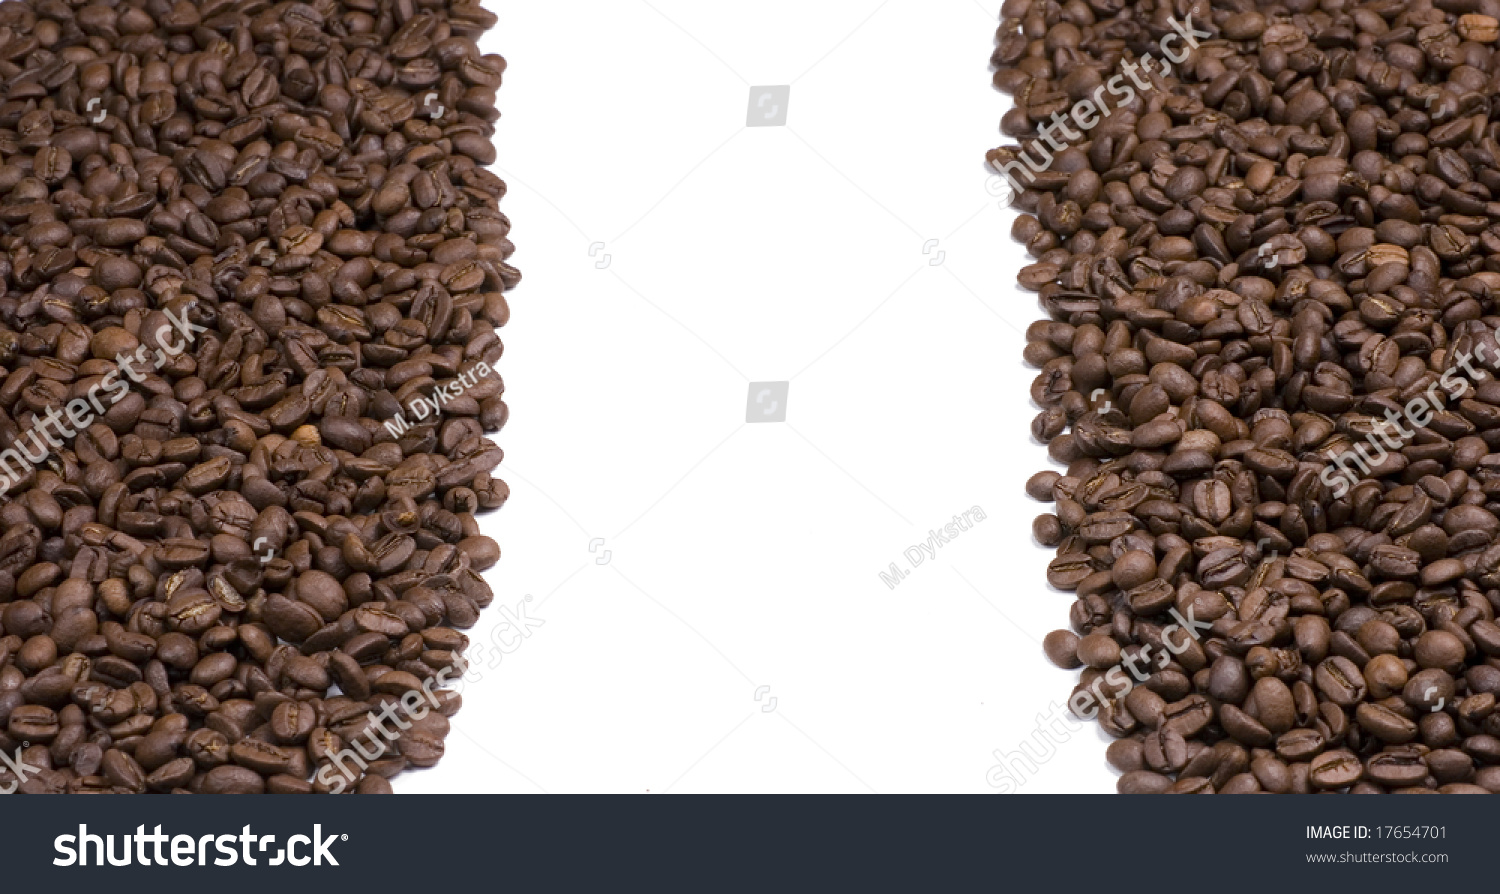 Coffee Beans on White Background #17654701